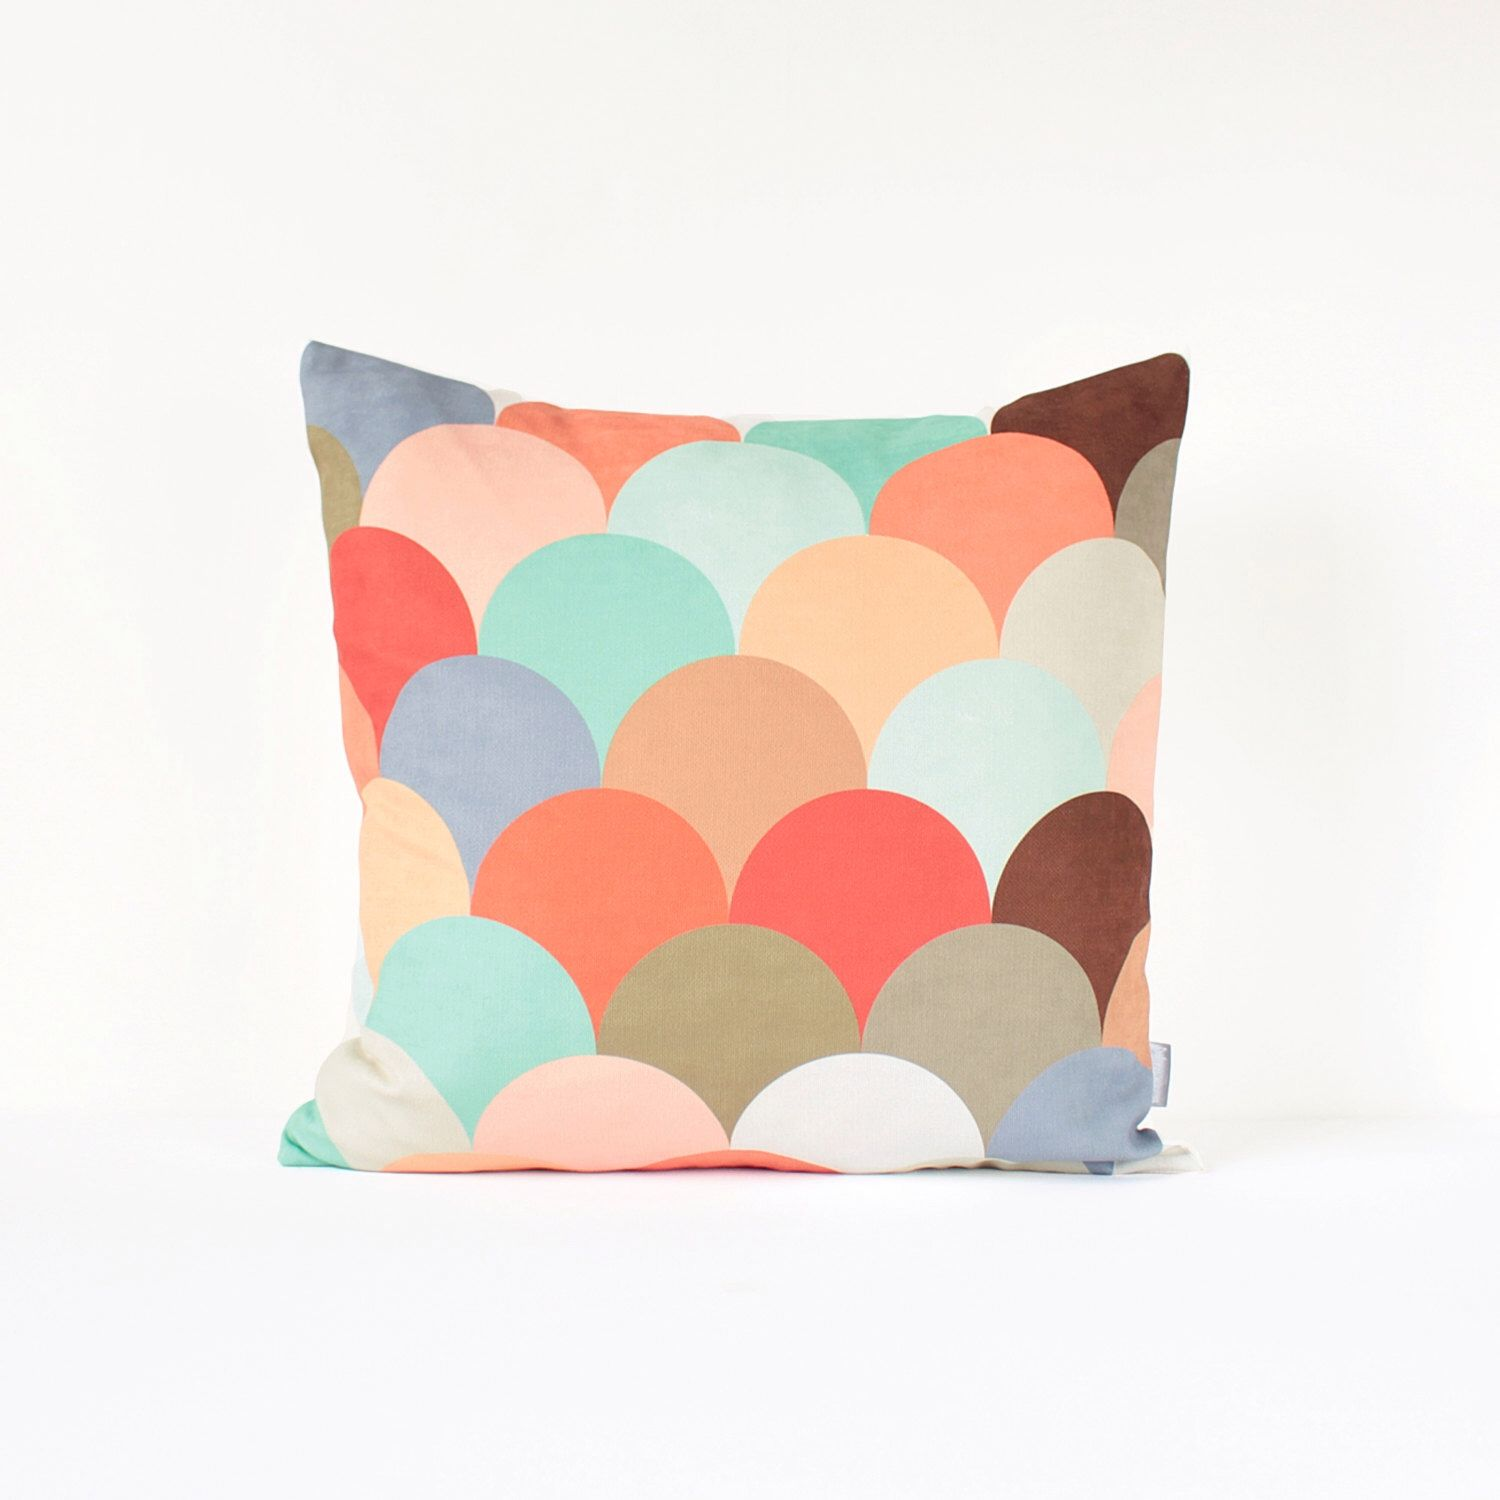 magnificent sofa decorating black ideas decor for throw pillows accesories and accent target accents orange throwllows couch new sweater pillow giraffe camel turquoise peach rustic decorative max sale throws white